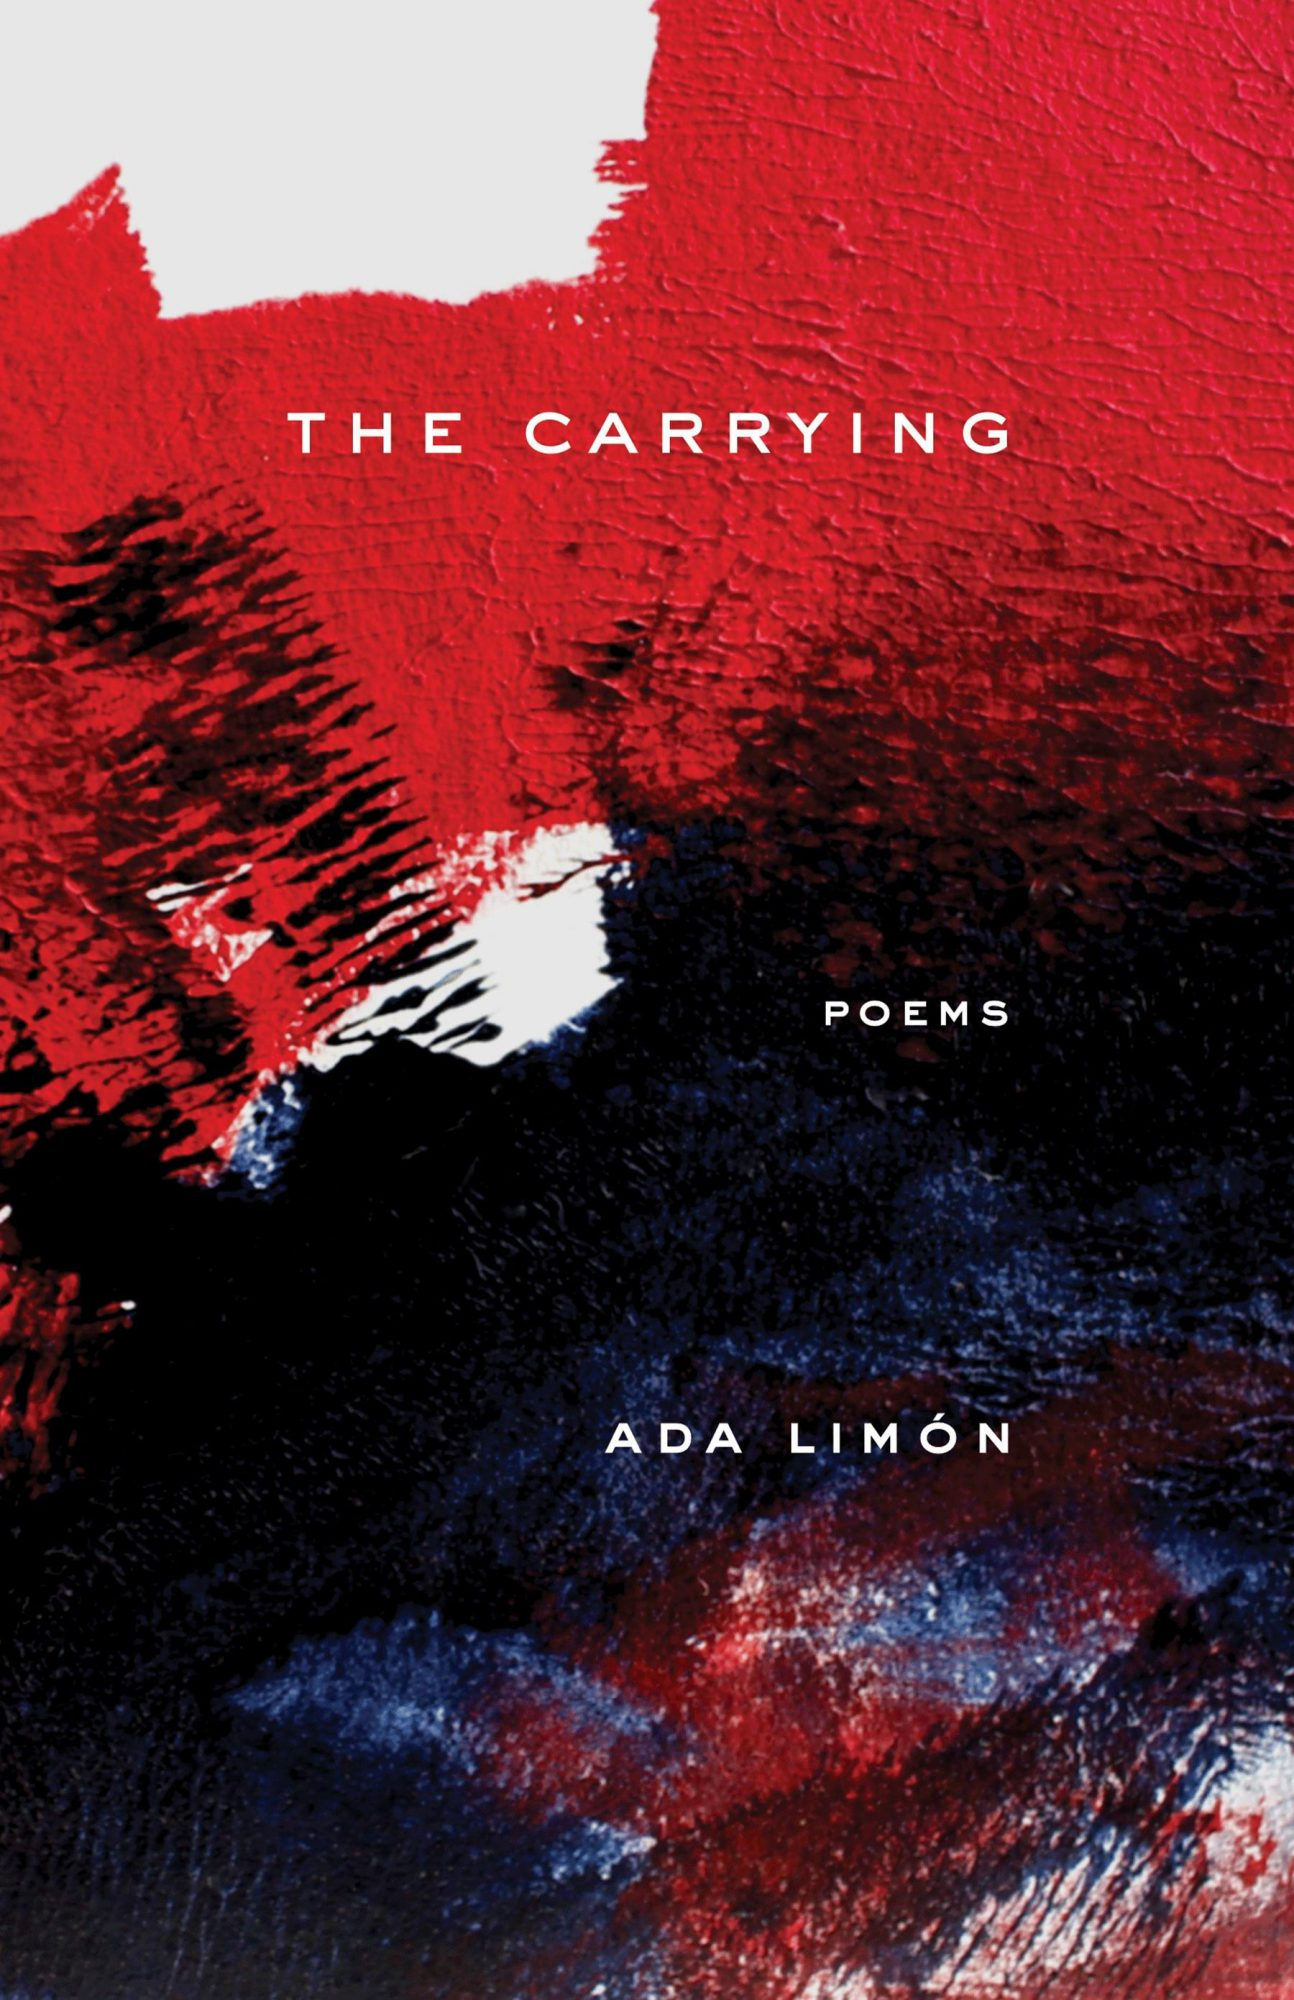 The Carrying by Ada LimonPublisher: Milkweed Editions